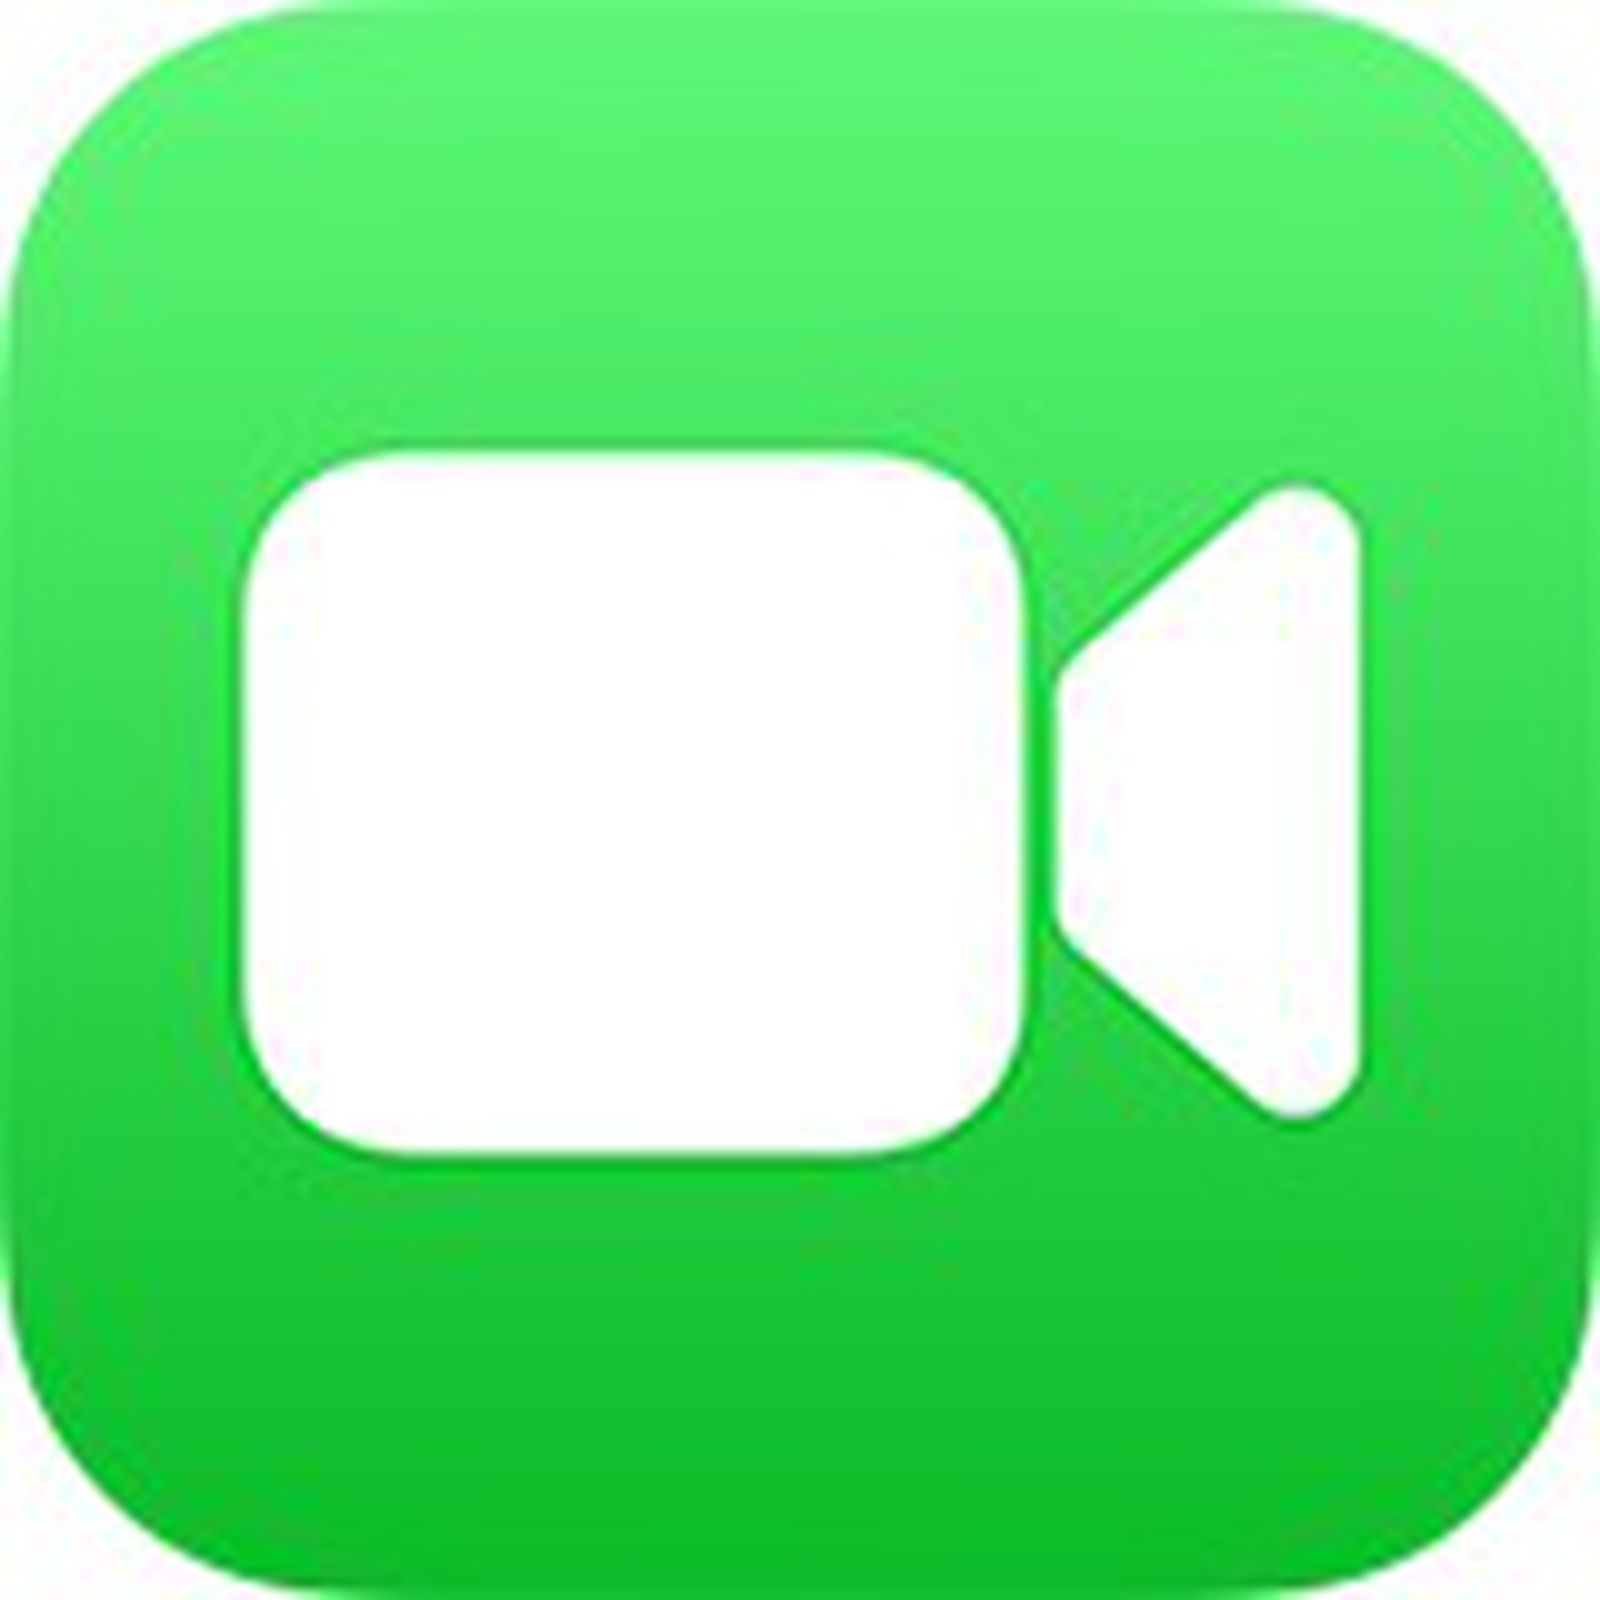 How to Set Up FaceTime on iPhone - MacRumors